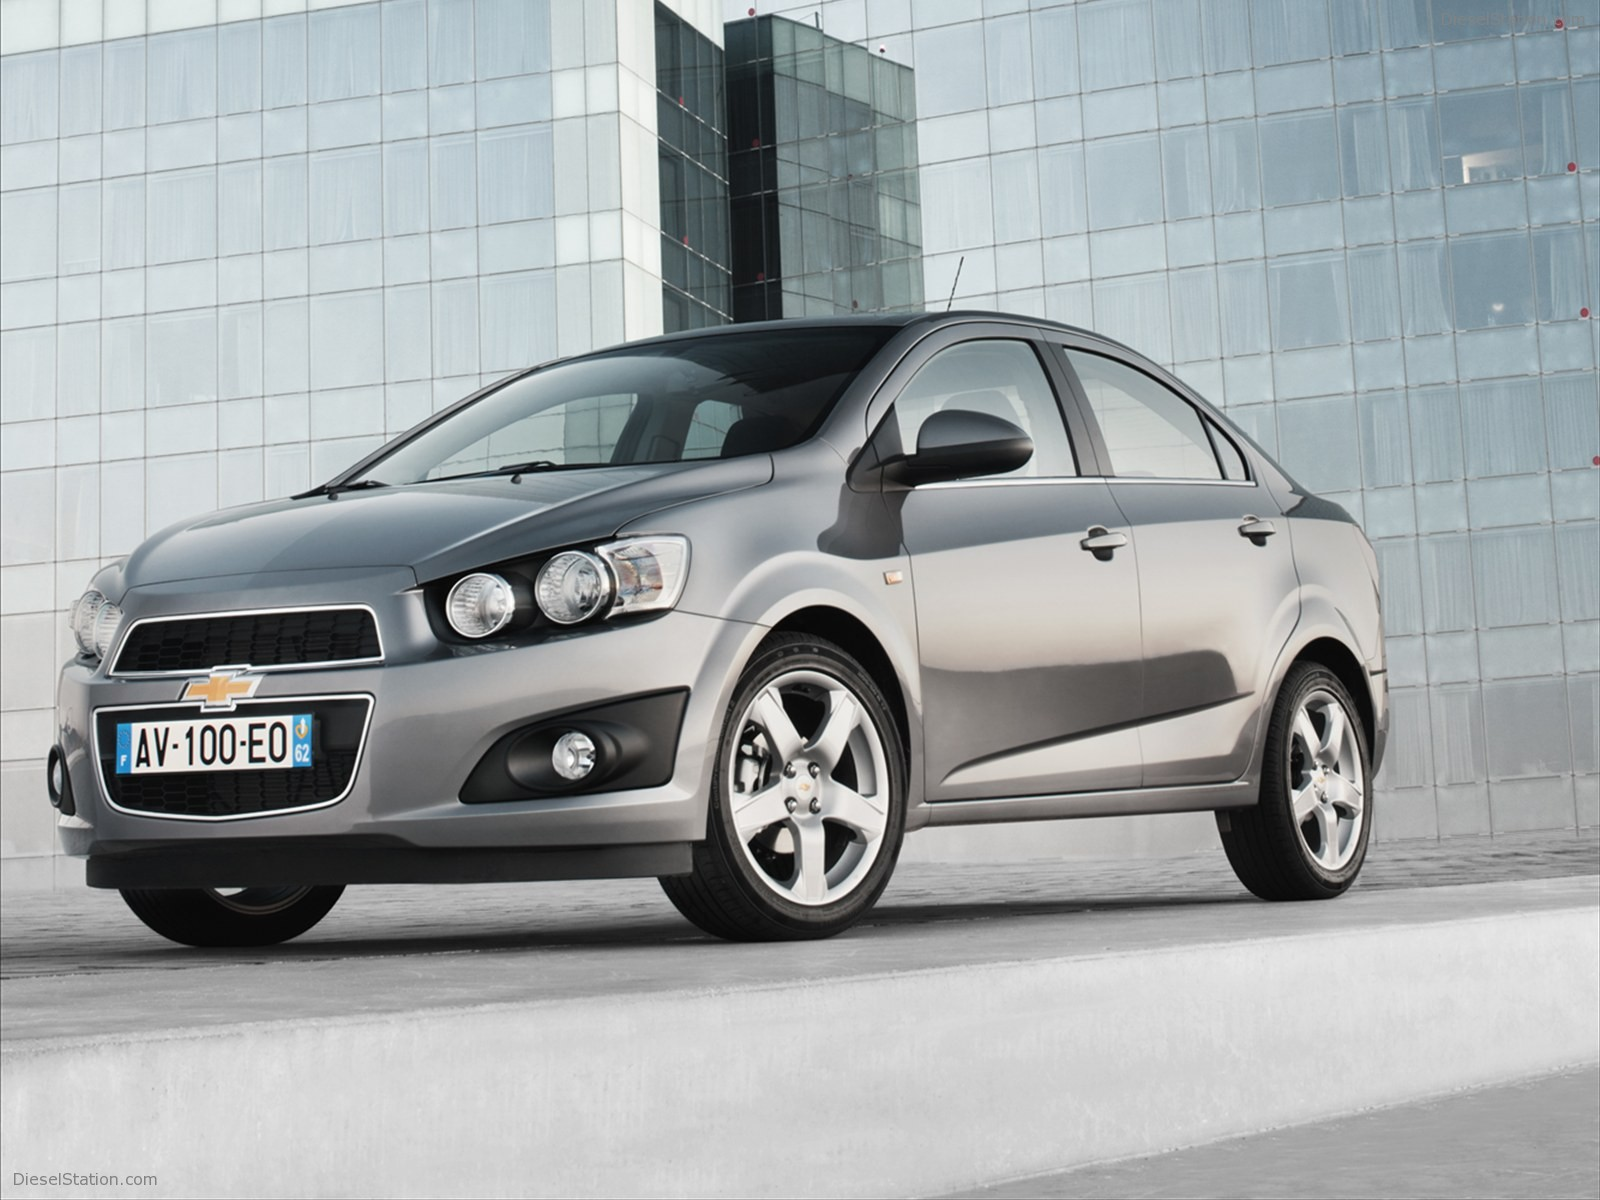 chevrolet aveo sedan 2014 images #6